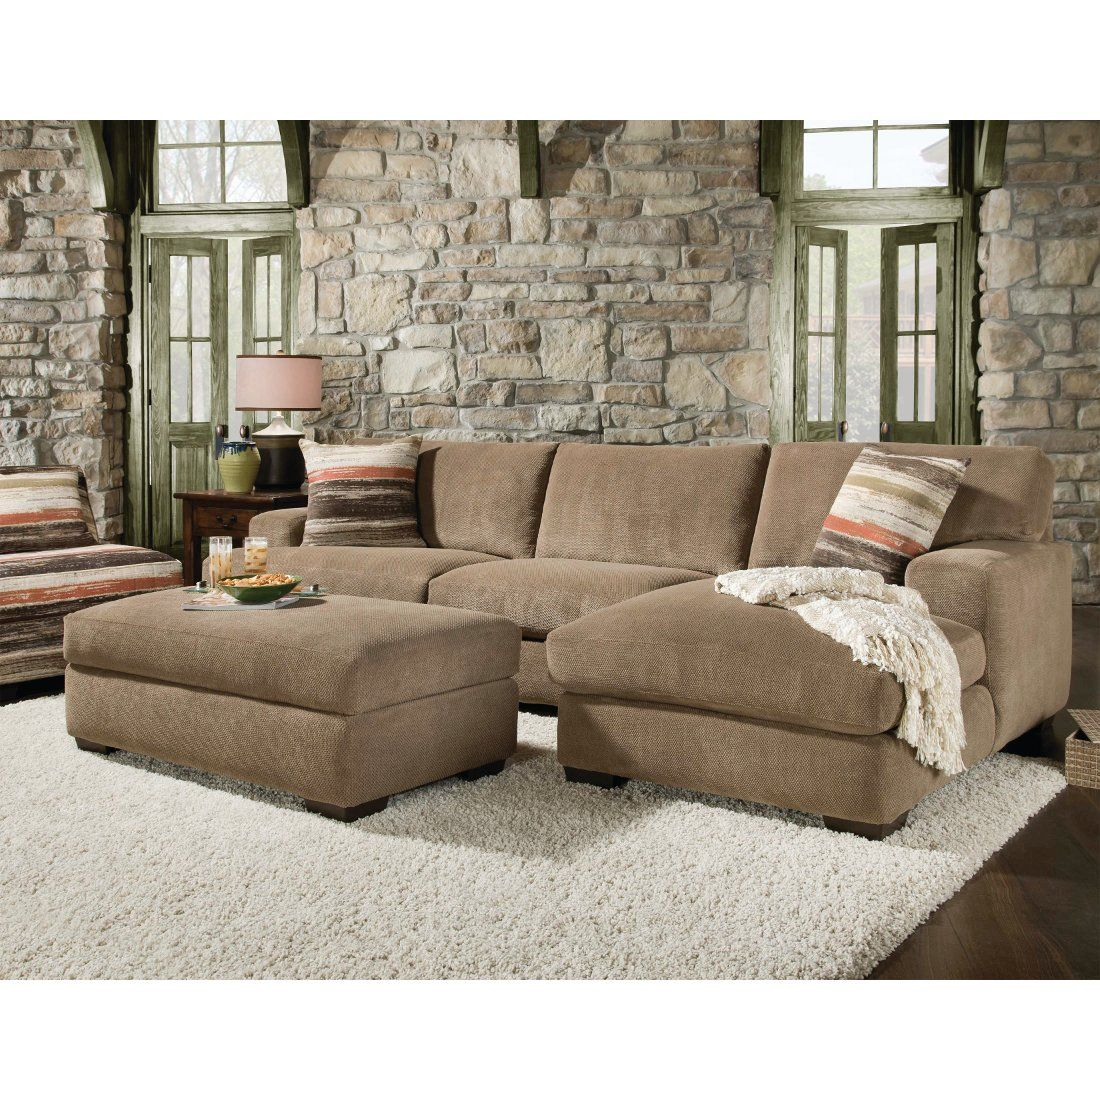 Mead Living Room Laf Sofa Raf Chaise Ottoman Sectional